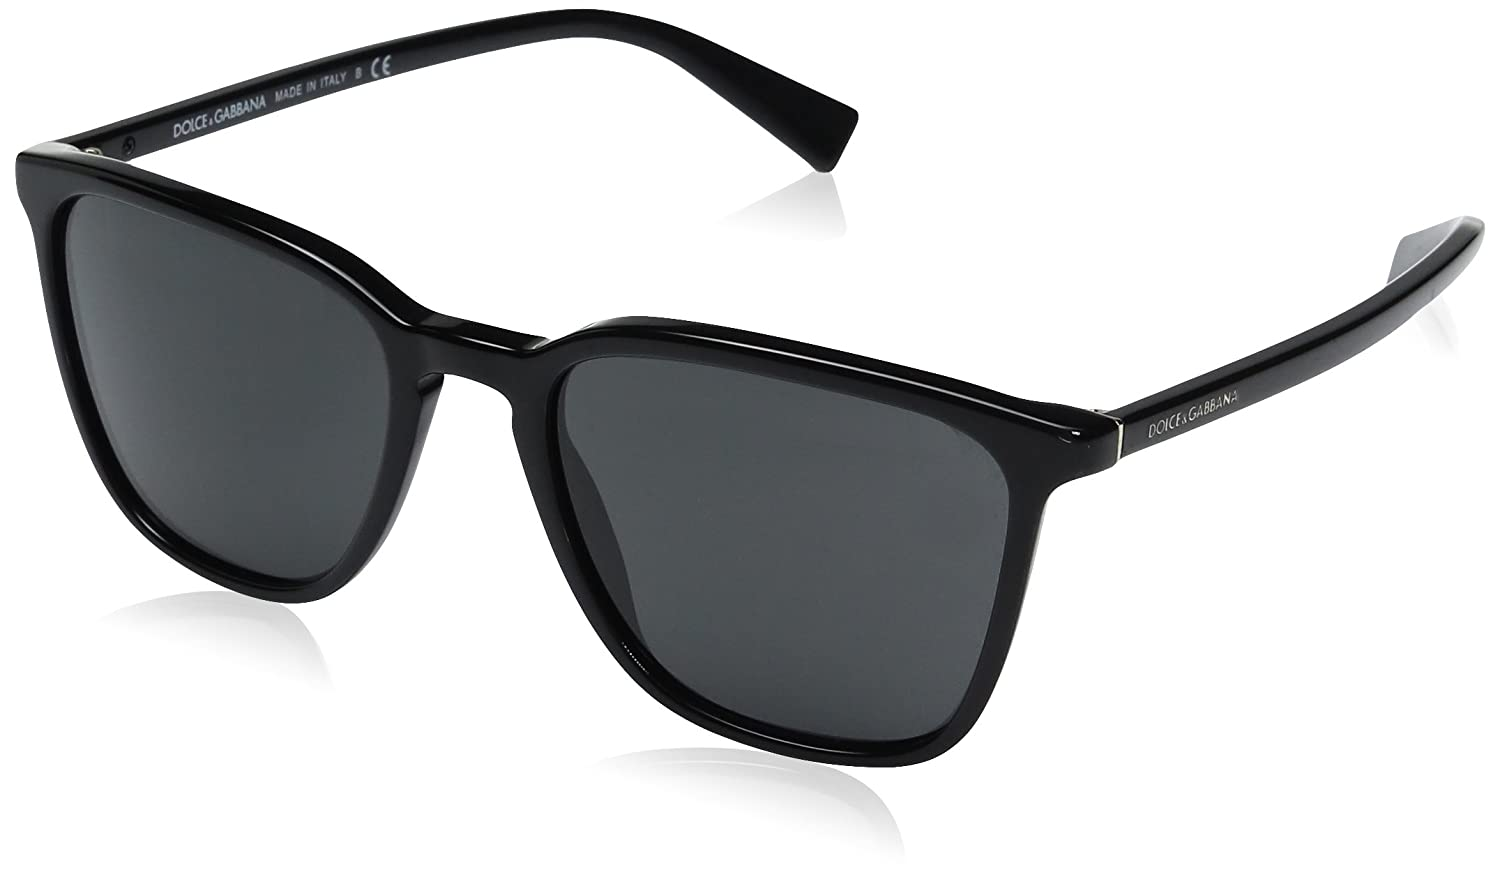 Dolce & Gabbana Mens Acetate Man Square Sunglasses, Black, 53 mm